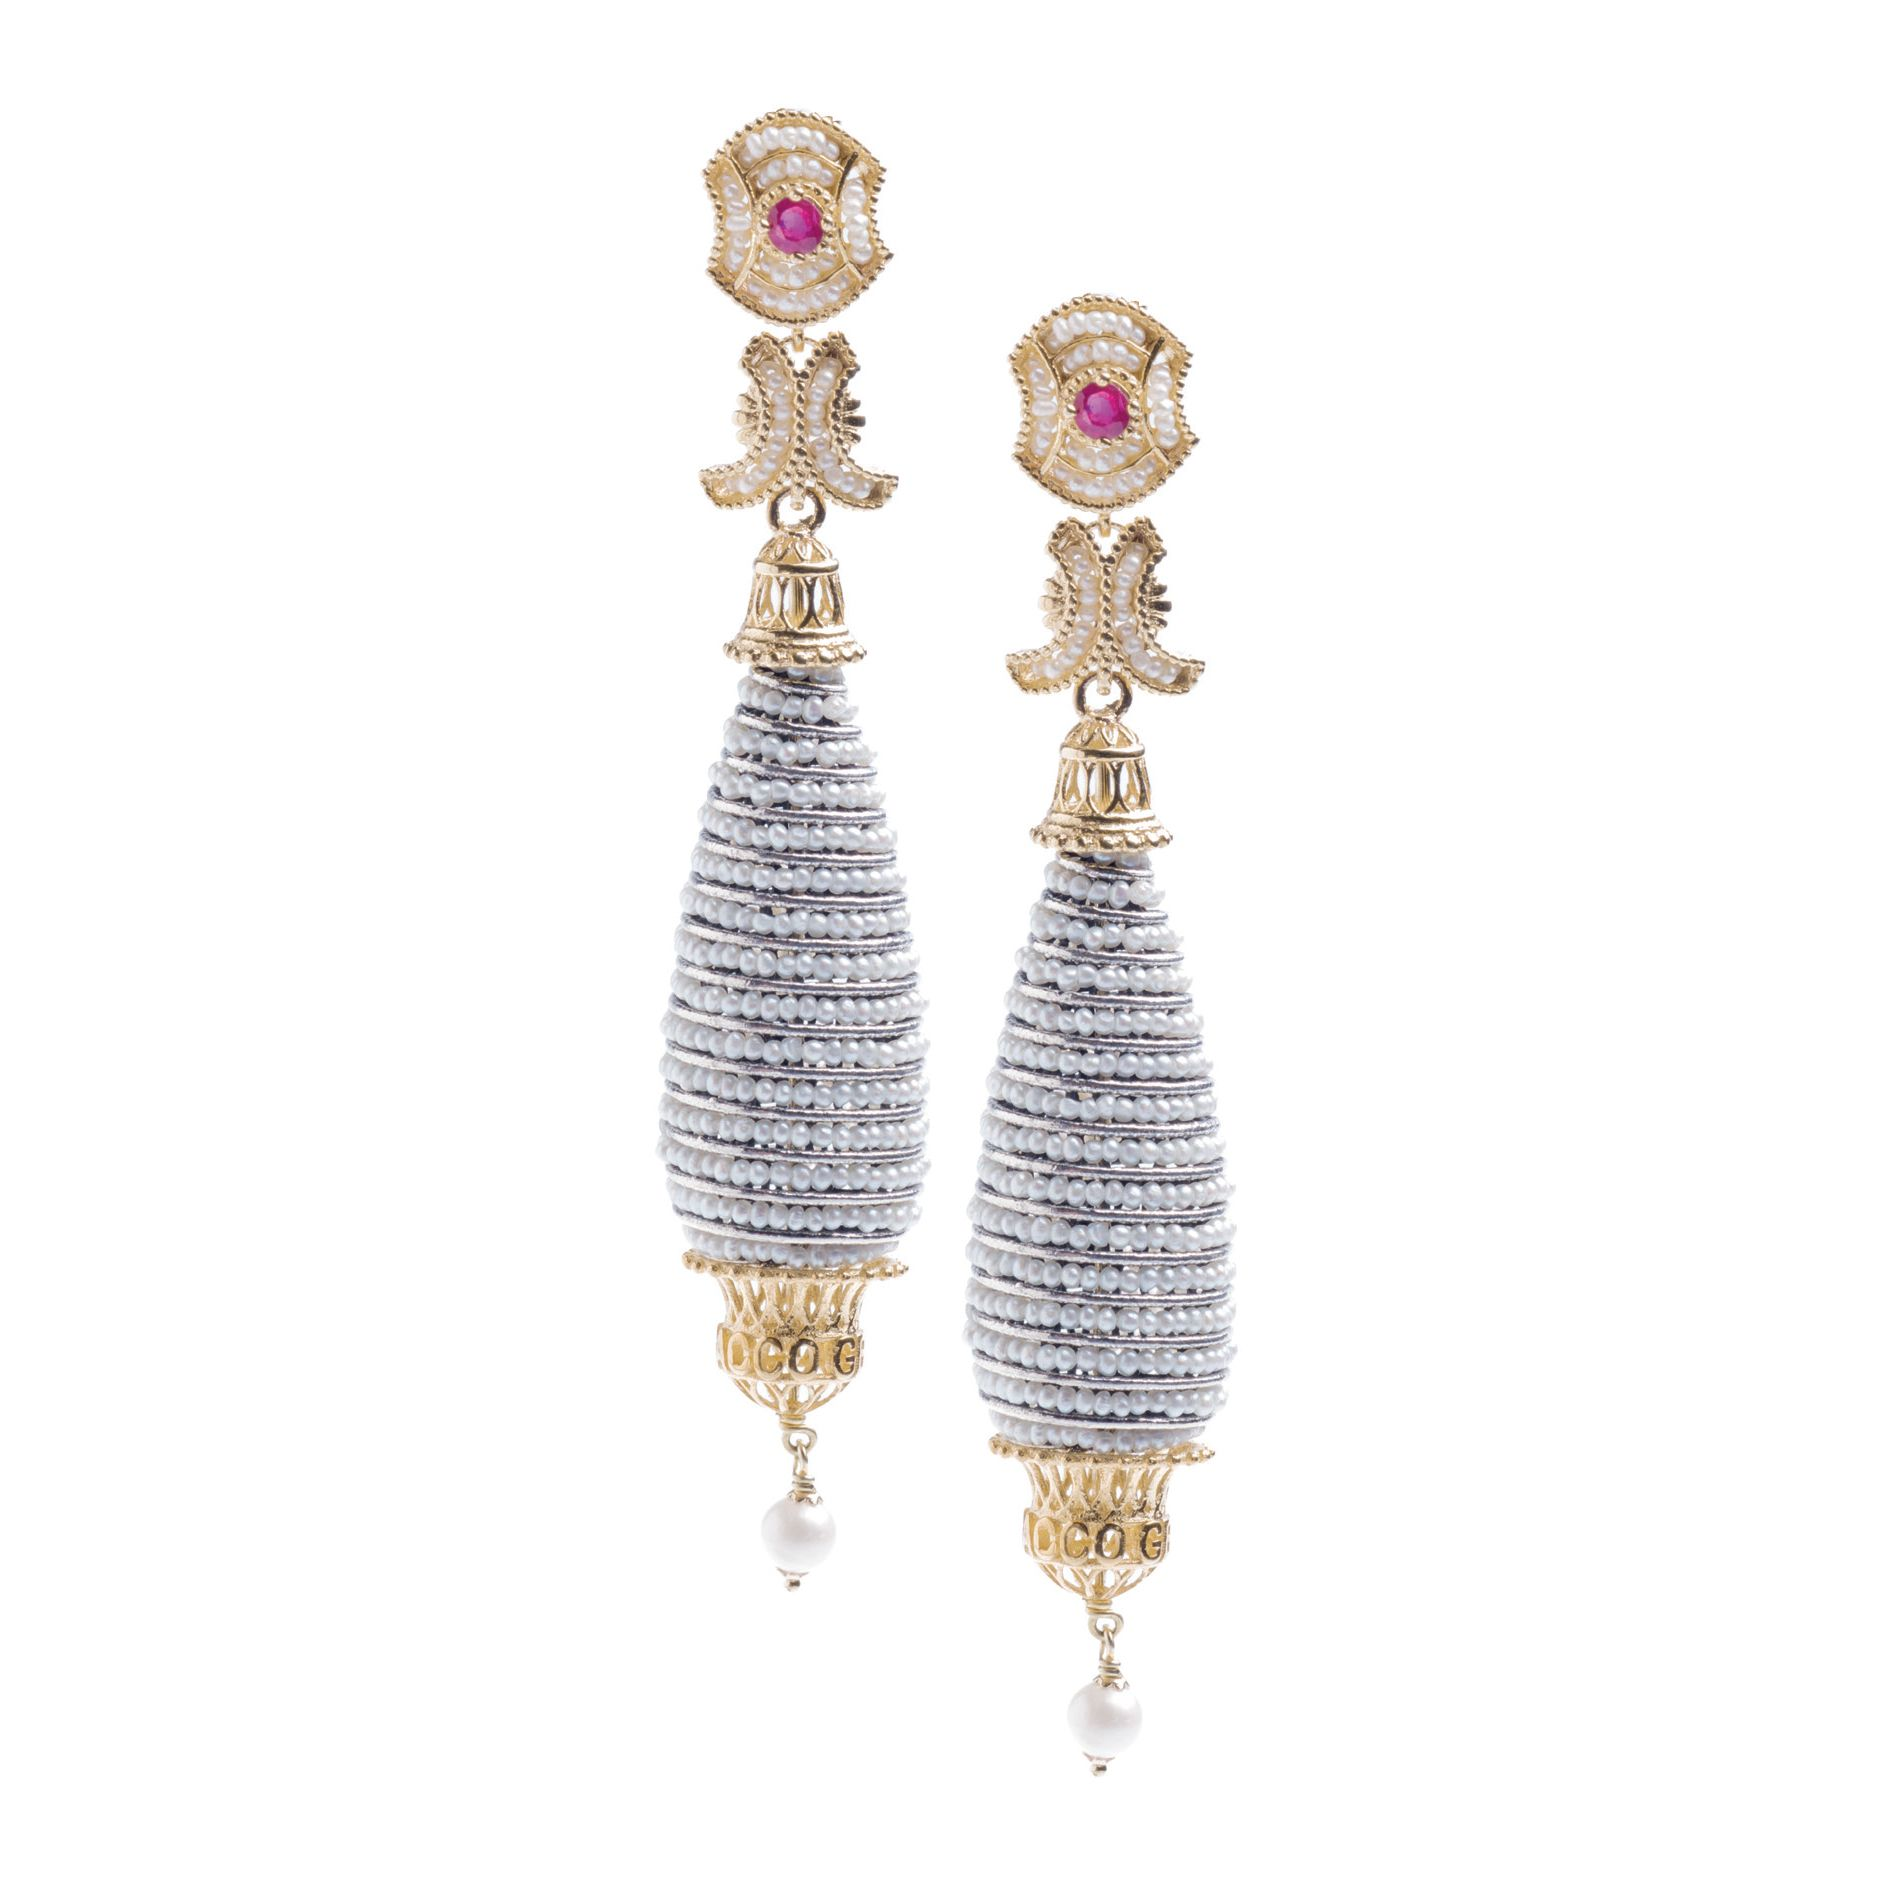 Pendant Earrings with Pearls and precious Stones (14242)